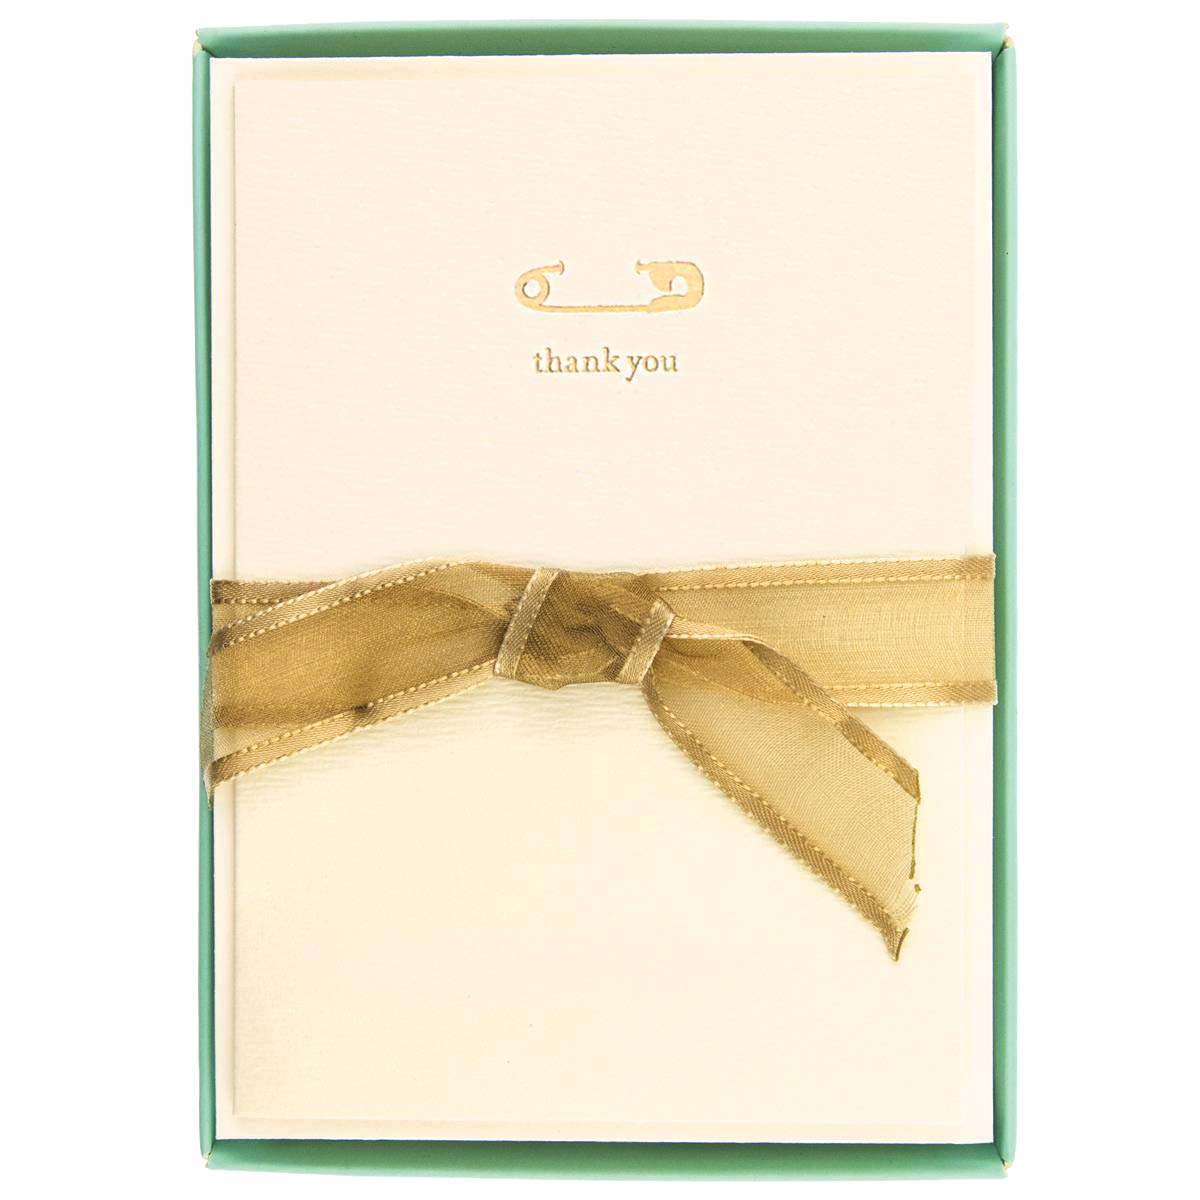 """Graphique Box of Thank You Cards, Safety Pin – Includes 10 Cards with Matching Envelopes and Storage Box, Cute Stationery Made of Durable Heavy Cardstock, Cards Measure 3.25"""" x 4.75"""""""